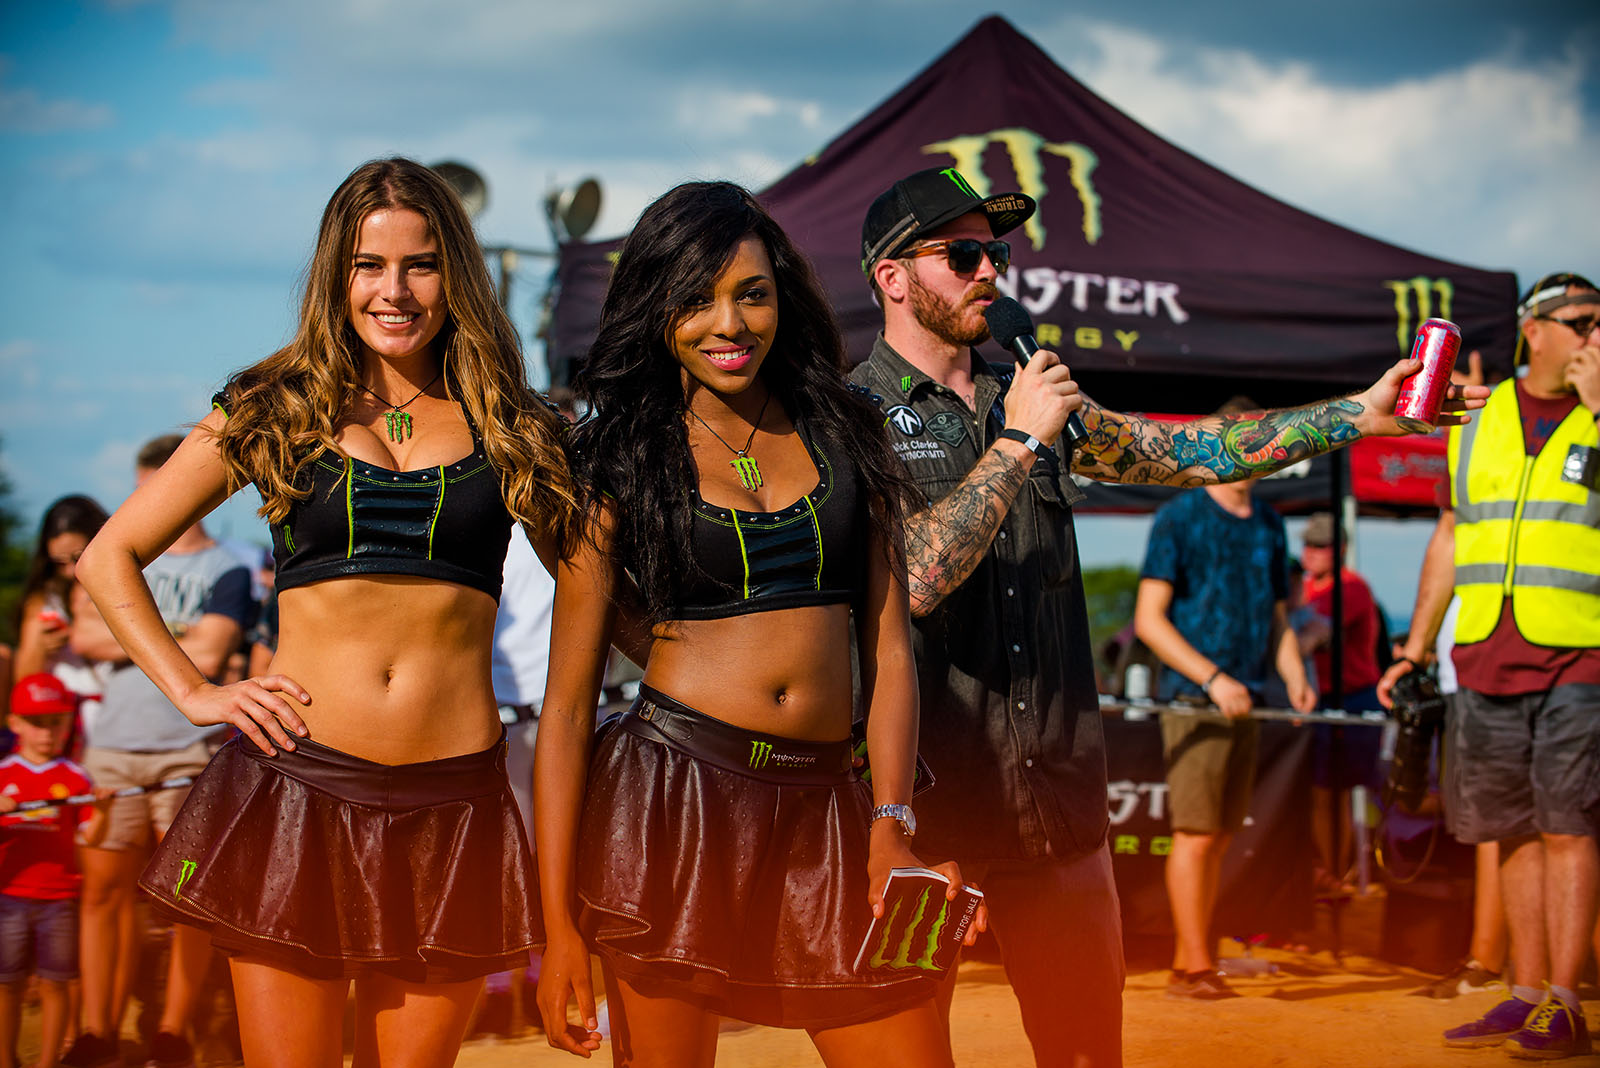 The gorgeous Monster Energy girls and Nick Clarke